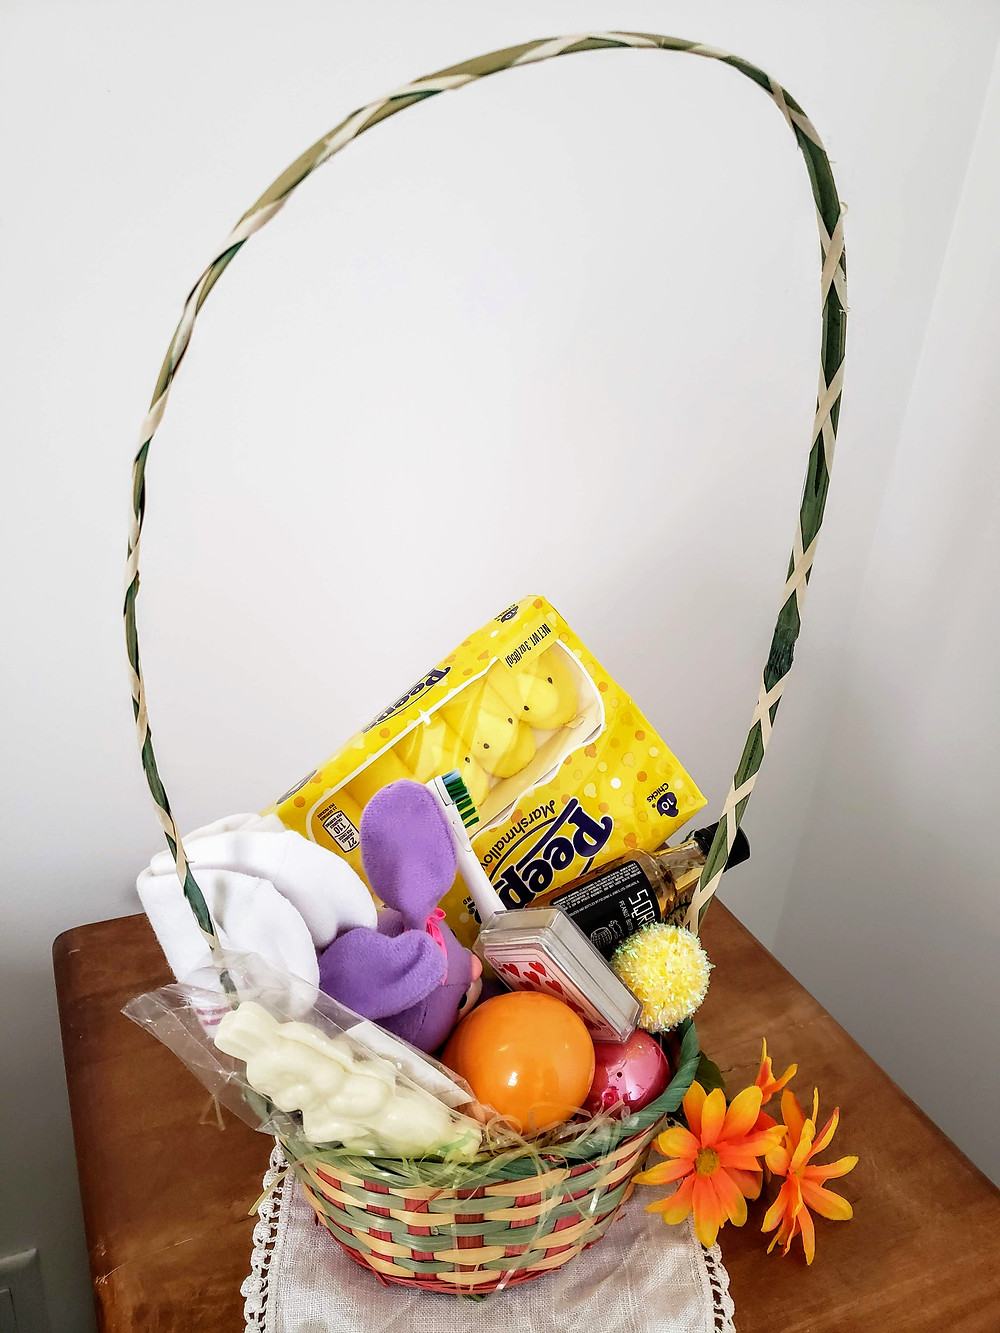 An Easter Basket Full Up With Goodies!